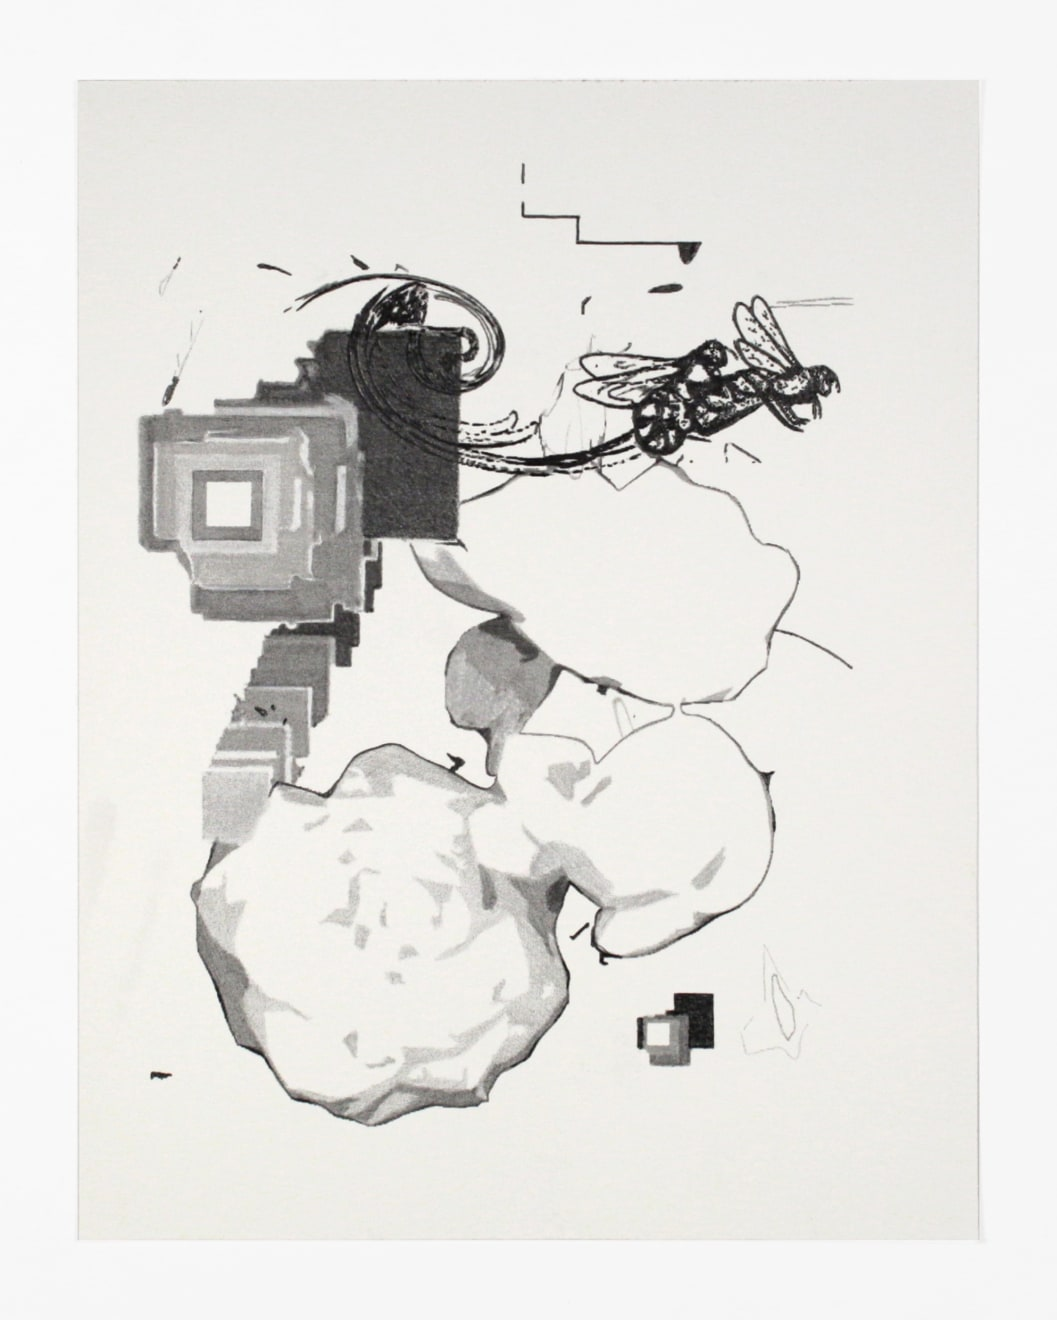 Robert Ruello Botanical_06, 2004 pencil on archival digital print on paper 11 x 8 1/2 in (27.9 x 21.6 cm) RR 115 $900